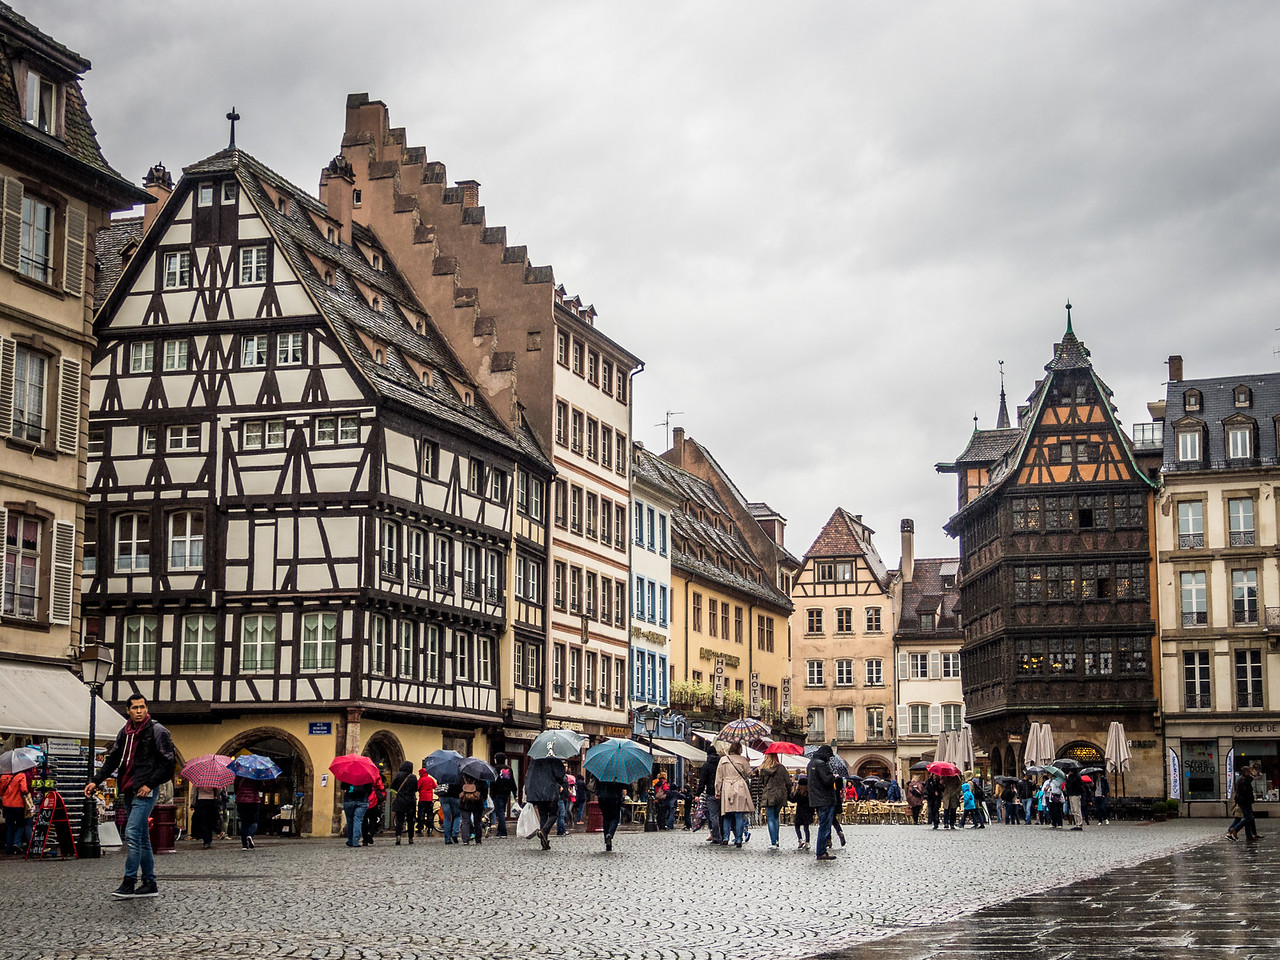 Saturday on the Square, Strasbourg, France